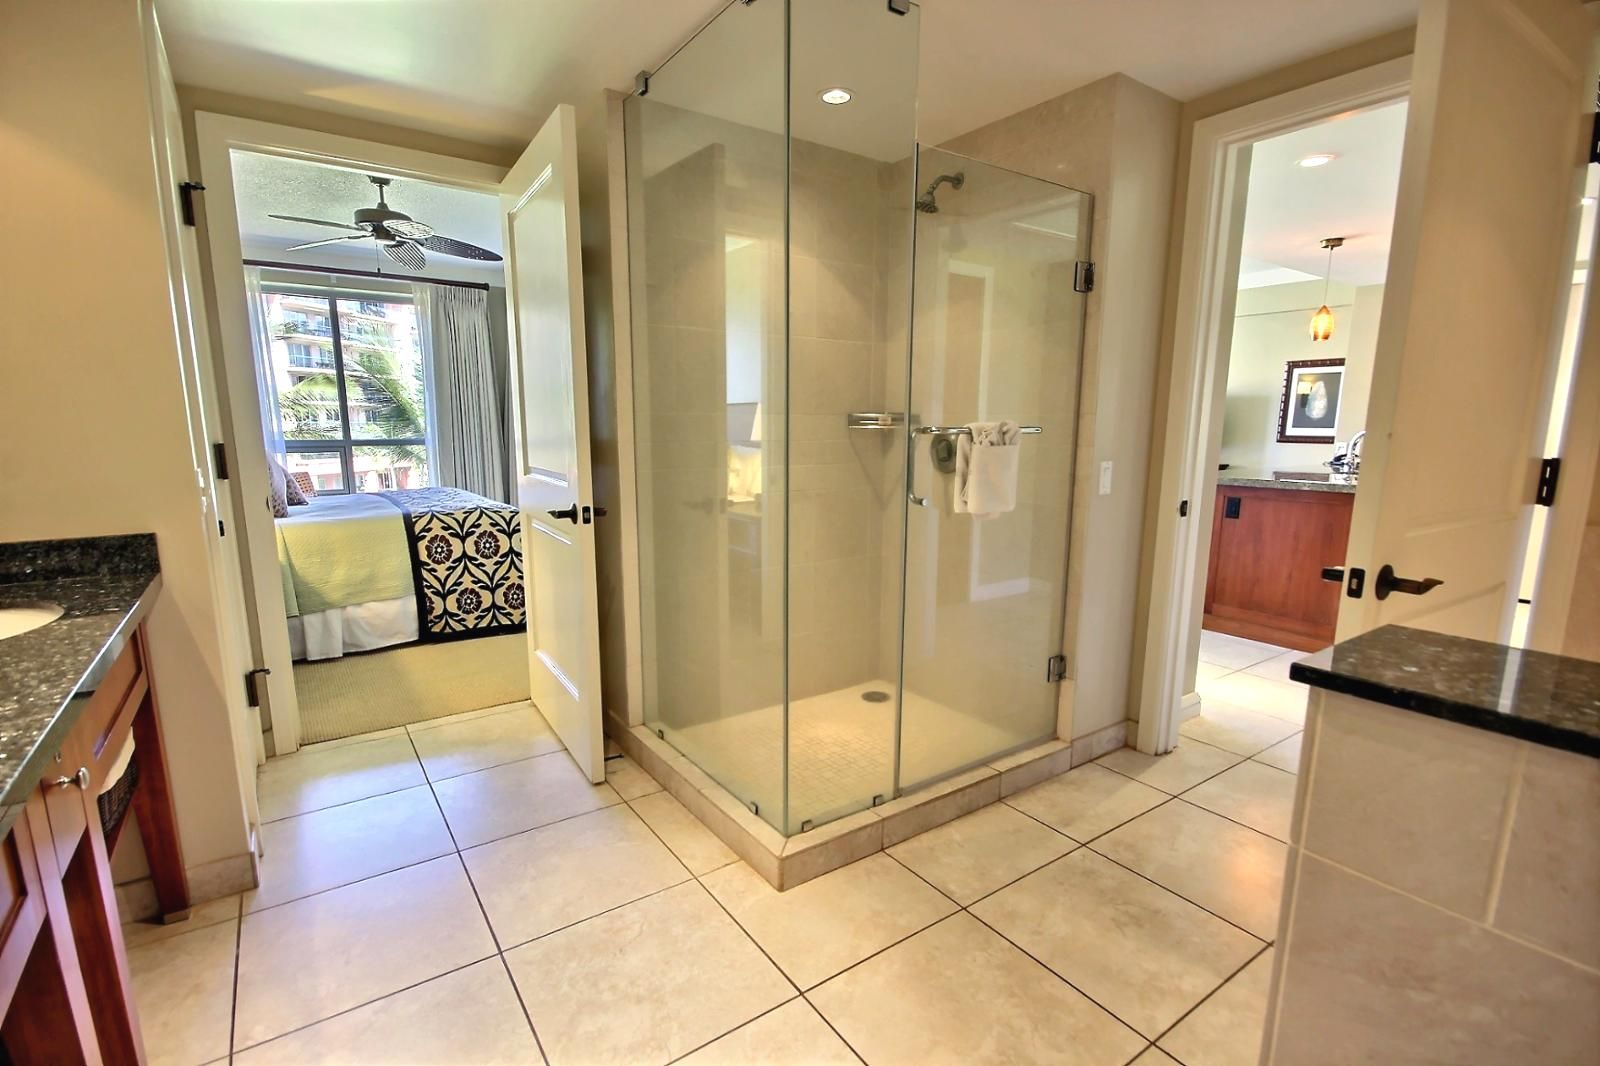 L shaped jack and jill bathroom layout - Google Search ...